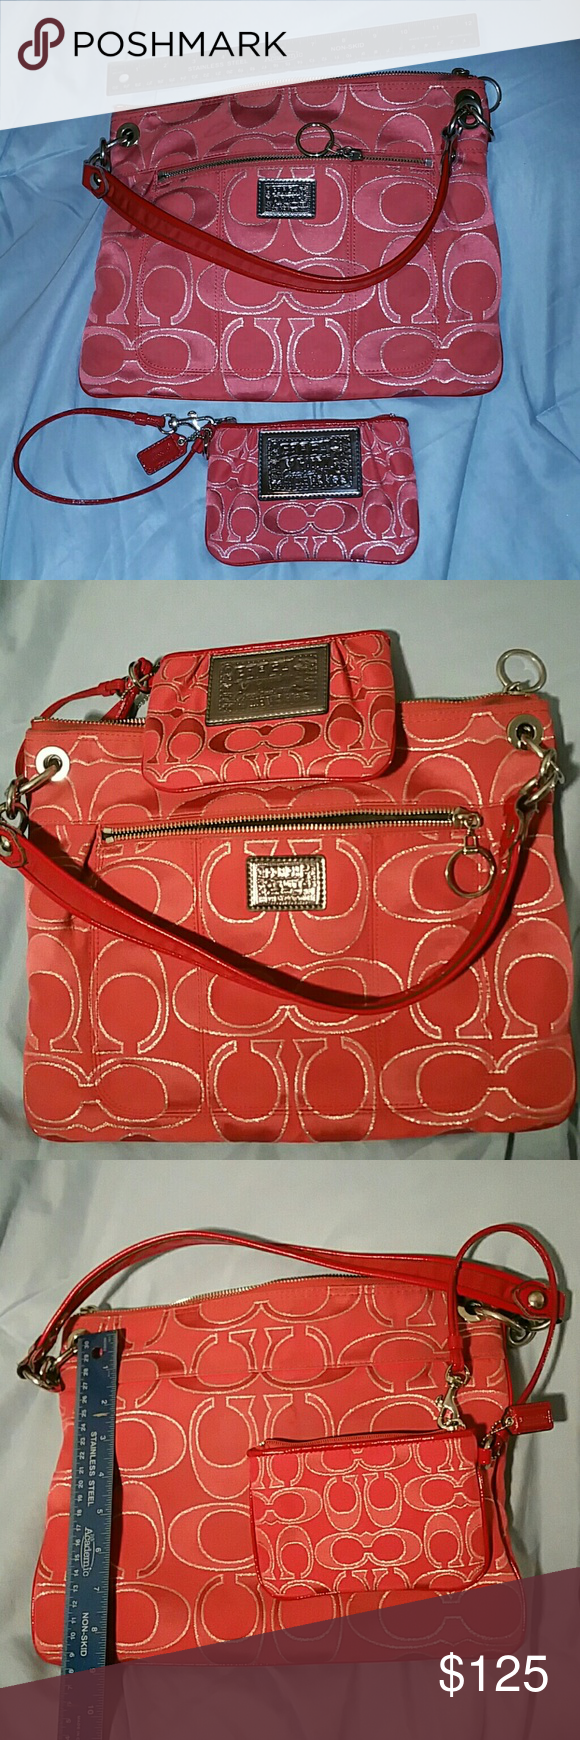 ab739a37261 Coach purse No. G1168-18135 with matching wristlet It's a really cute pink  color. Brown interior. At the zipper ends there's some dirt from it being  used ...